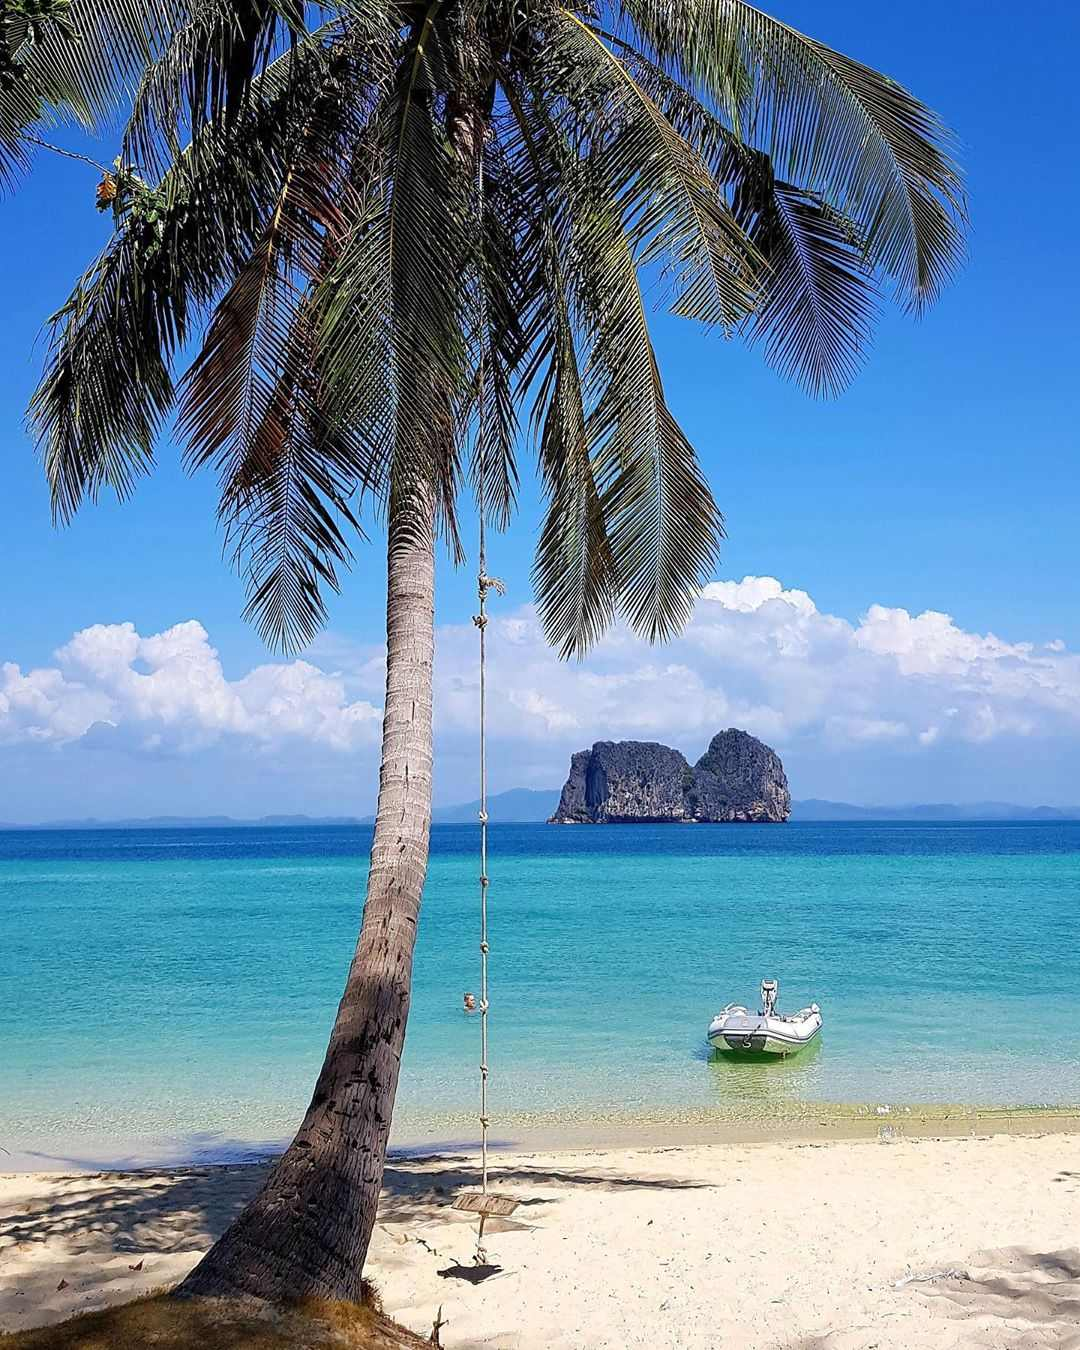 Palm tree with swing on the beach of Koh Ngai